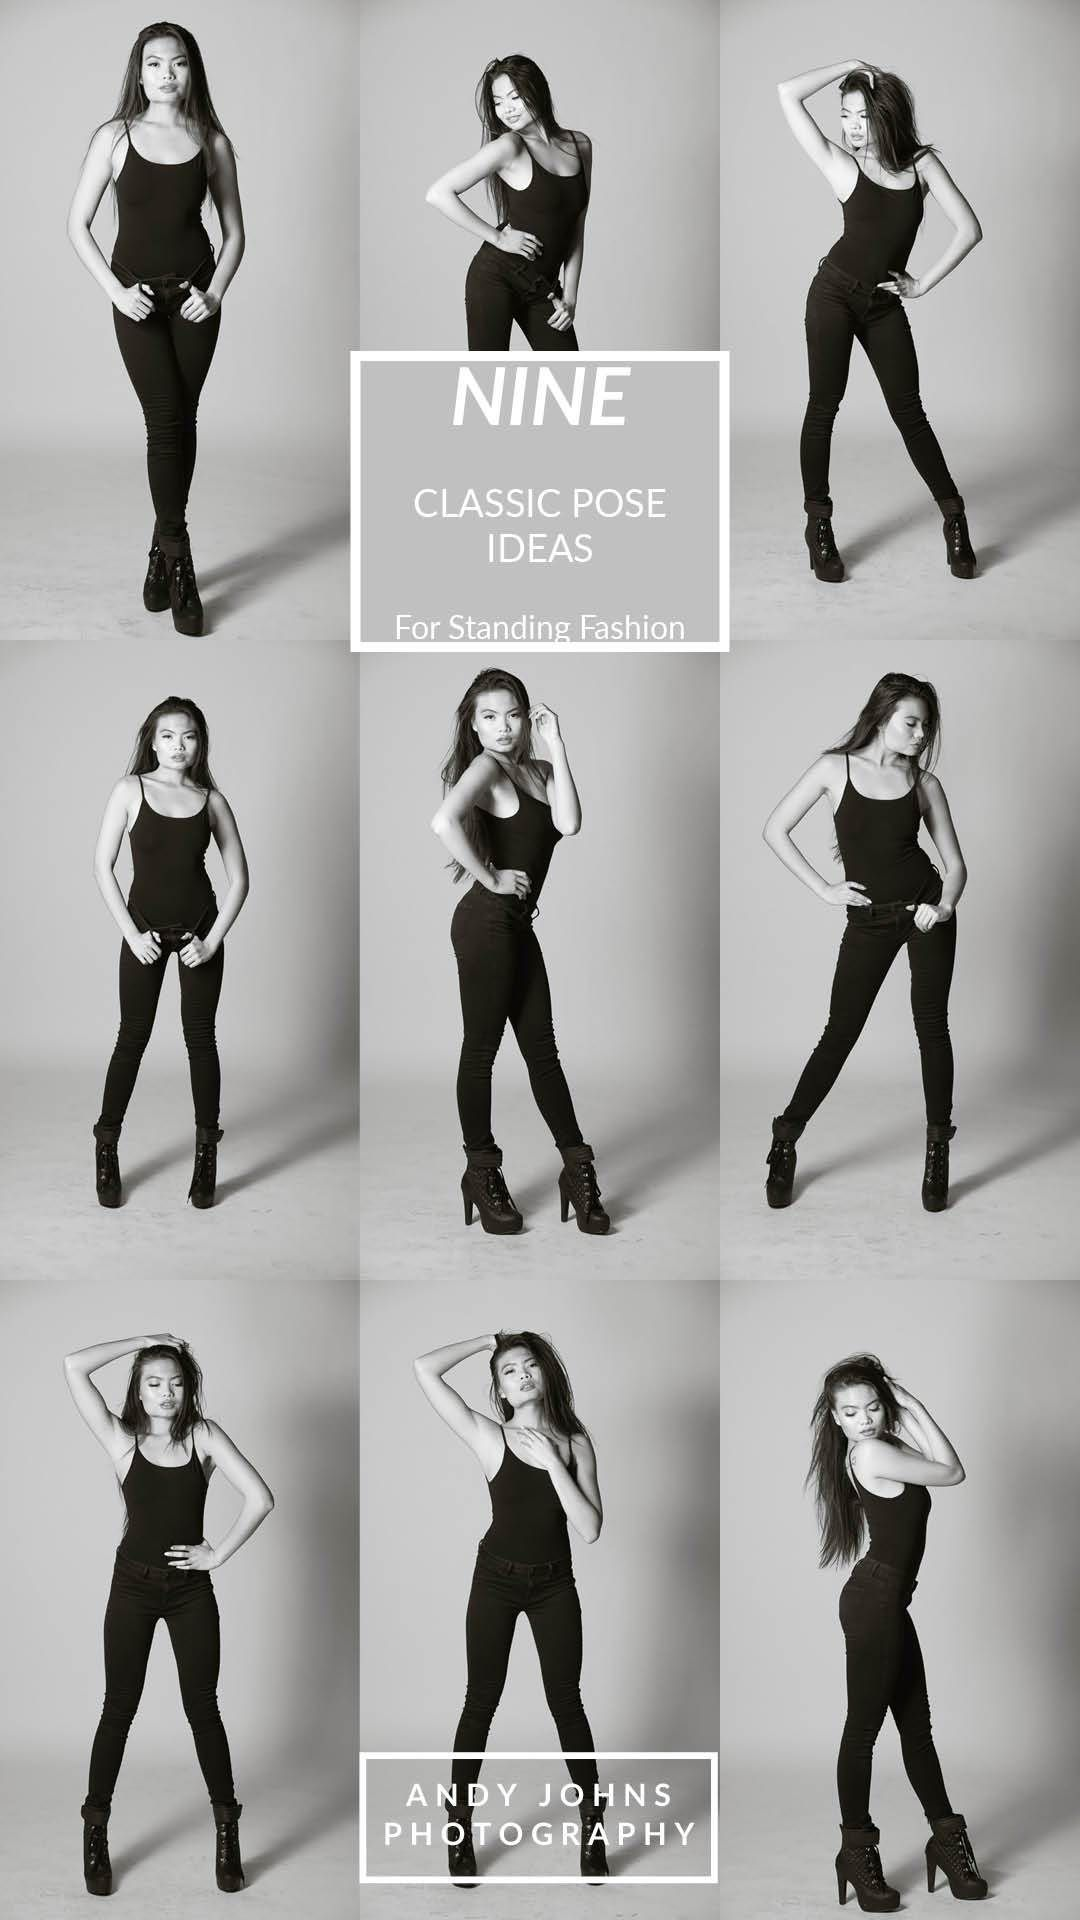 9 Classic Pose Ideas for Standing Fashion  These standing